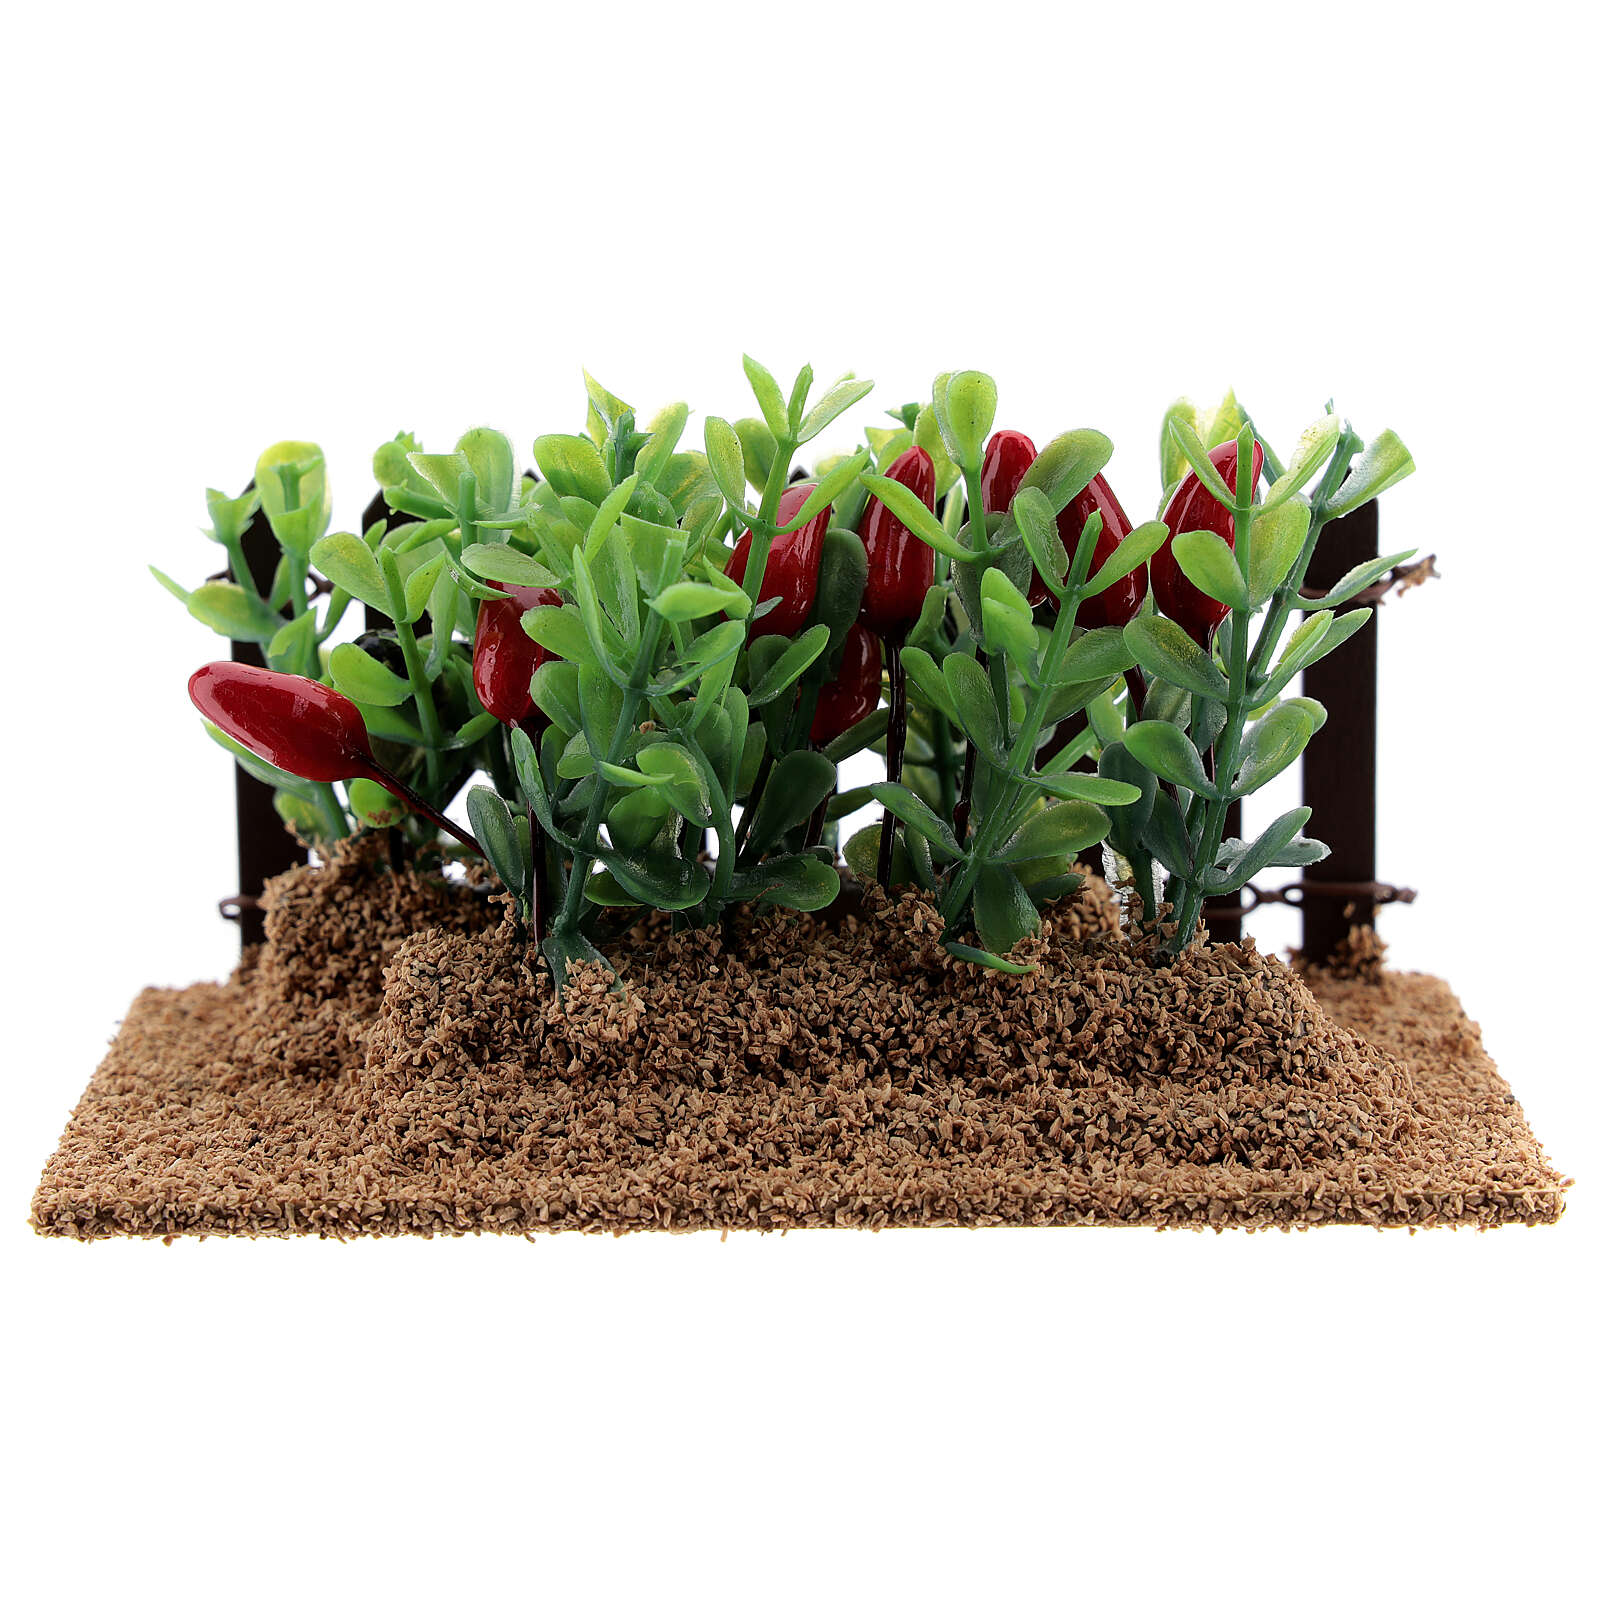 Garden with peppers and aubergines Nativity scene 12-14 cm 4